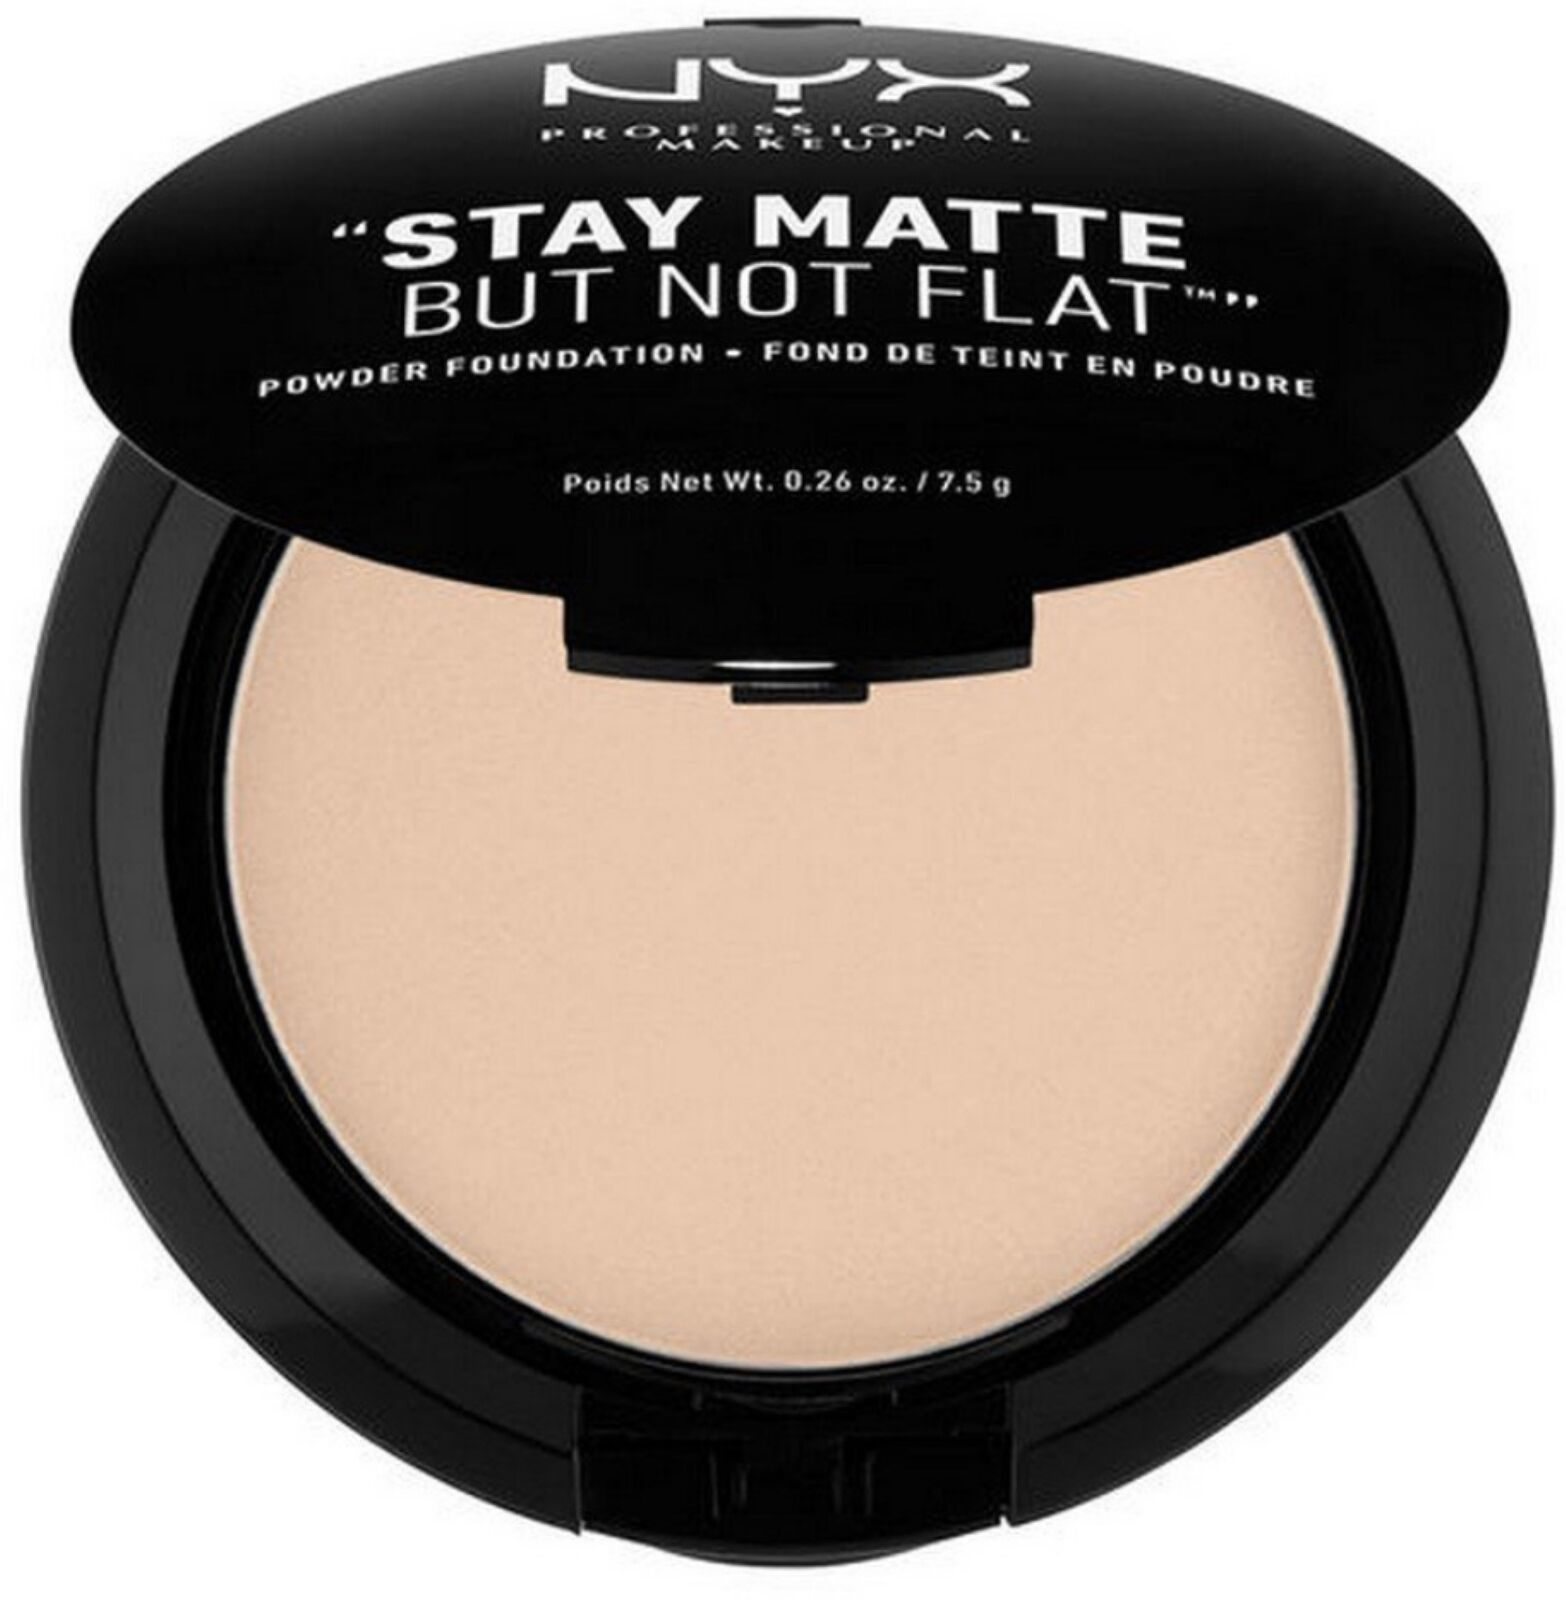 Primary image for NYX HD Studio Stay Matte But Not Flat Powder Foundation 0.26 oz - SMP02 Nude